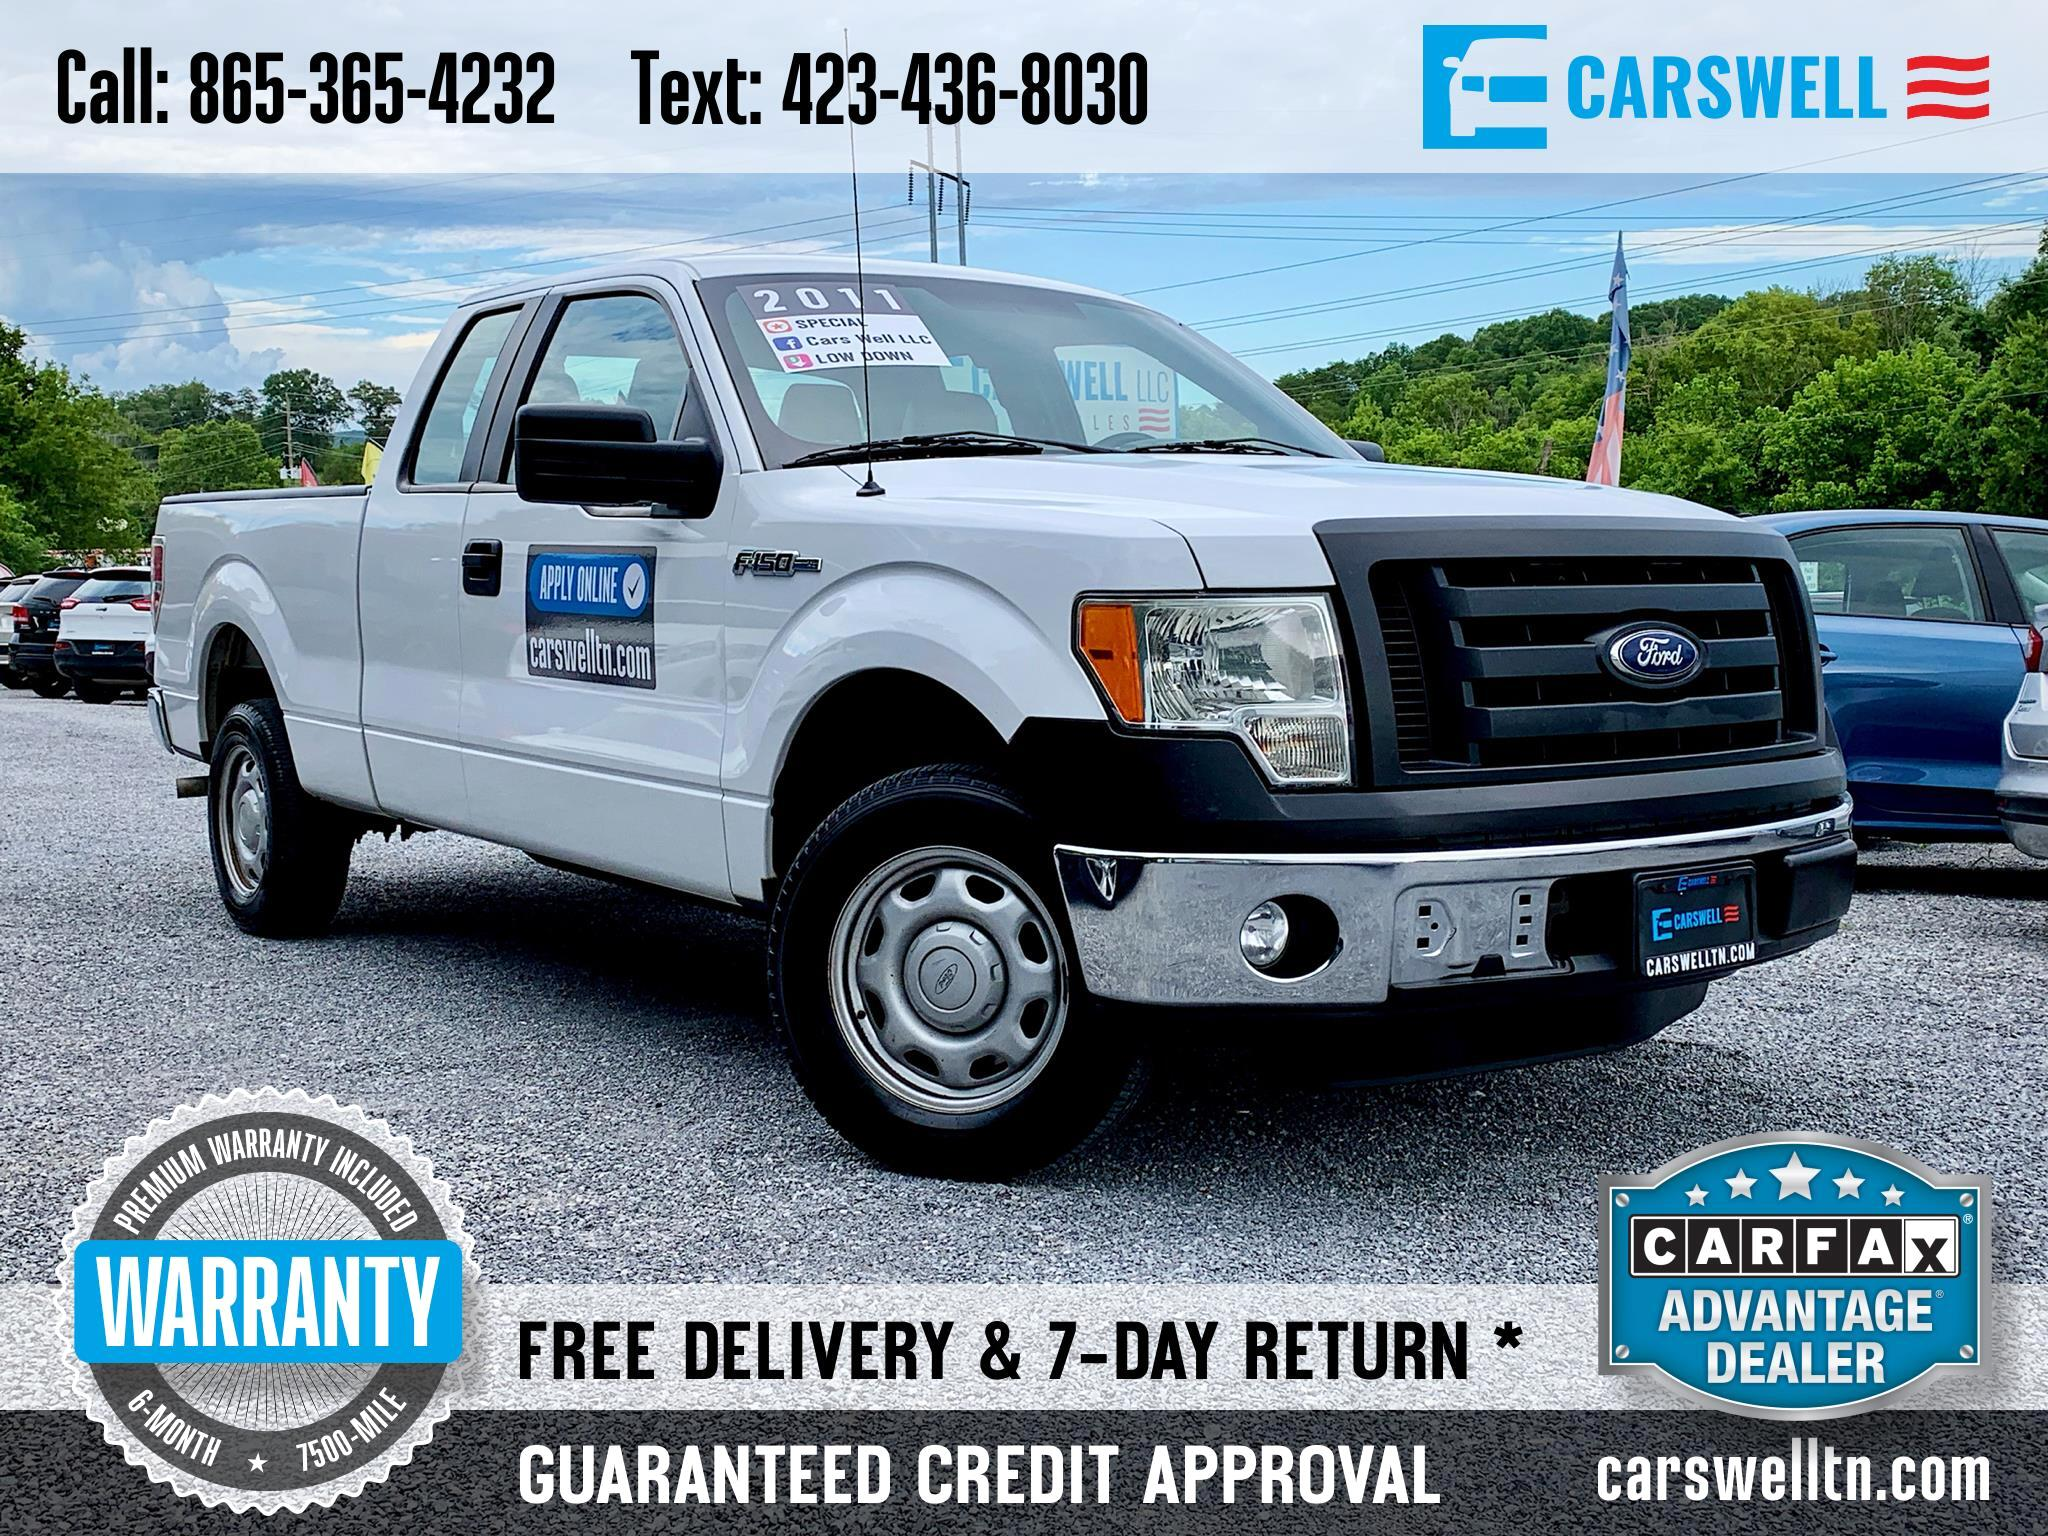 2011 Ford F-150 2WD SuperCab 145